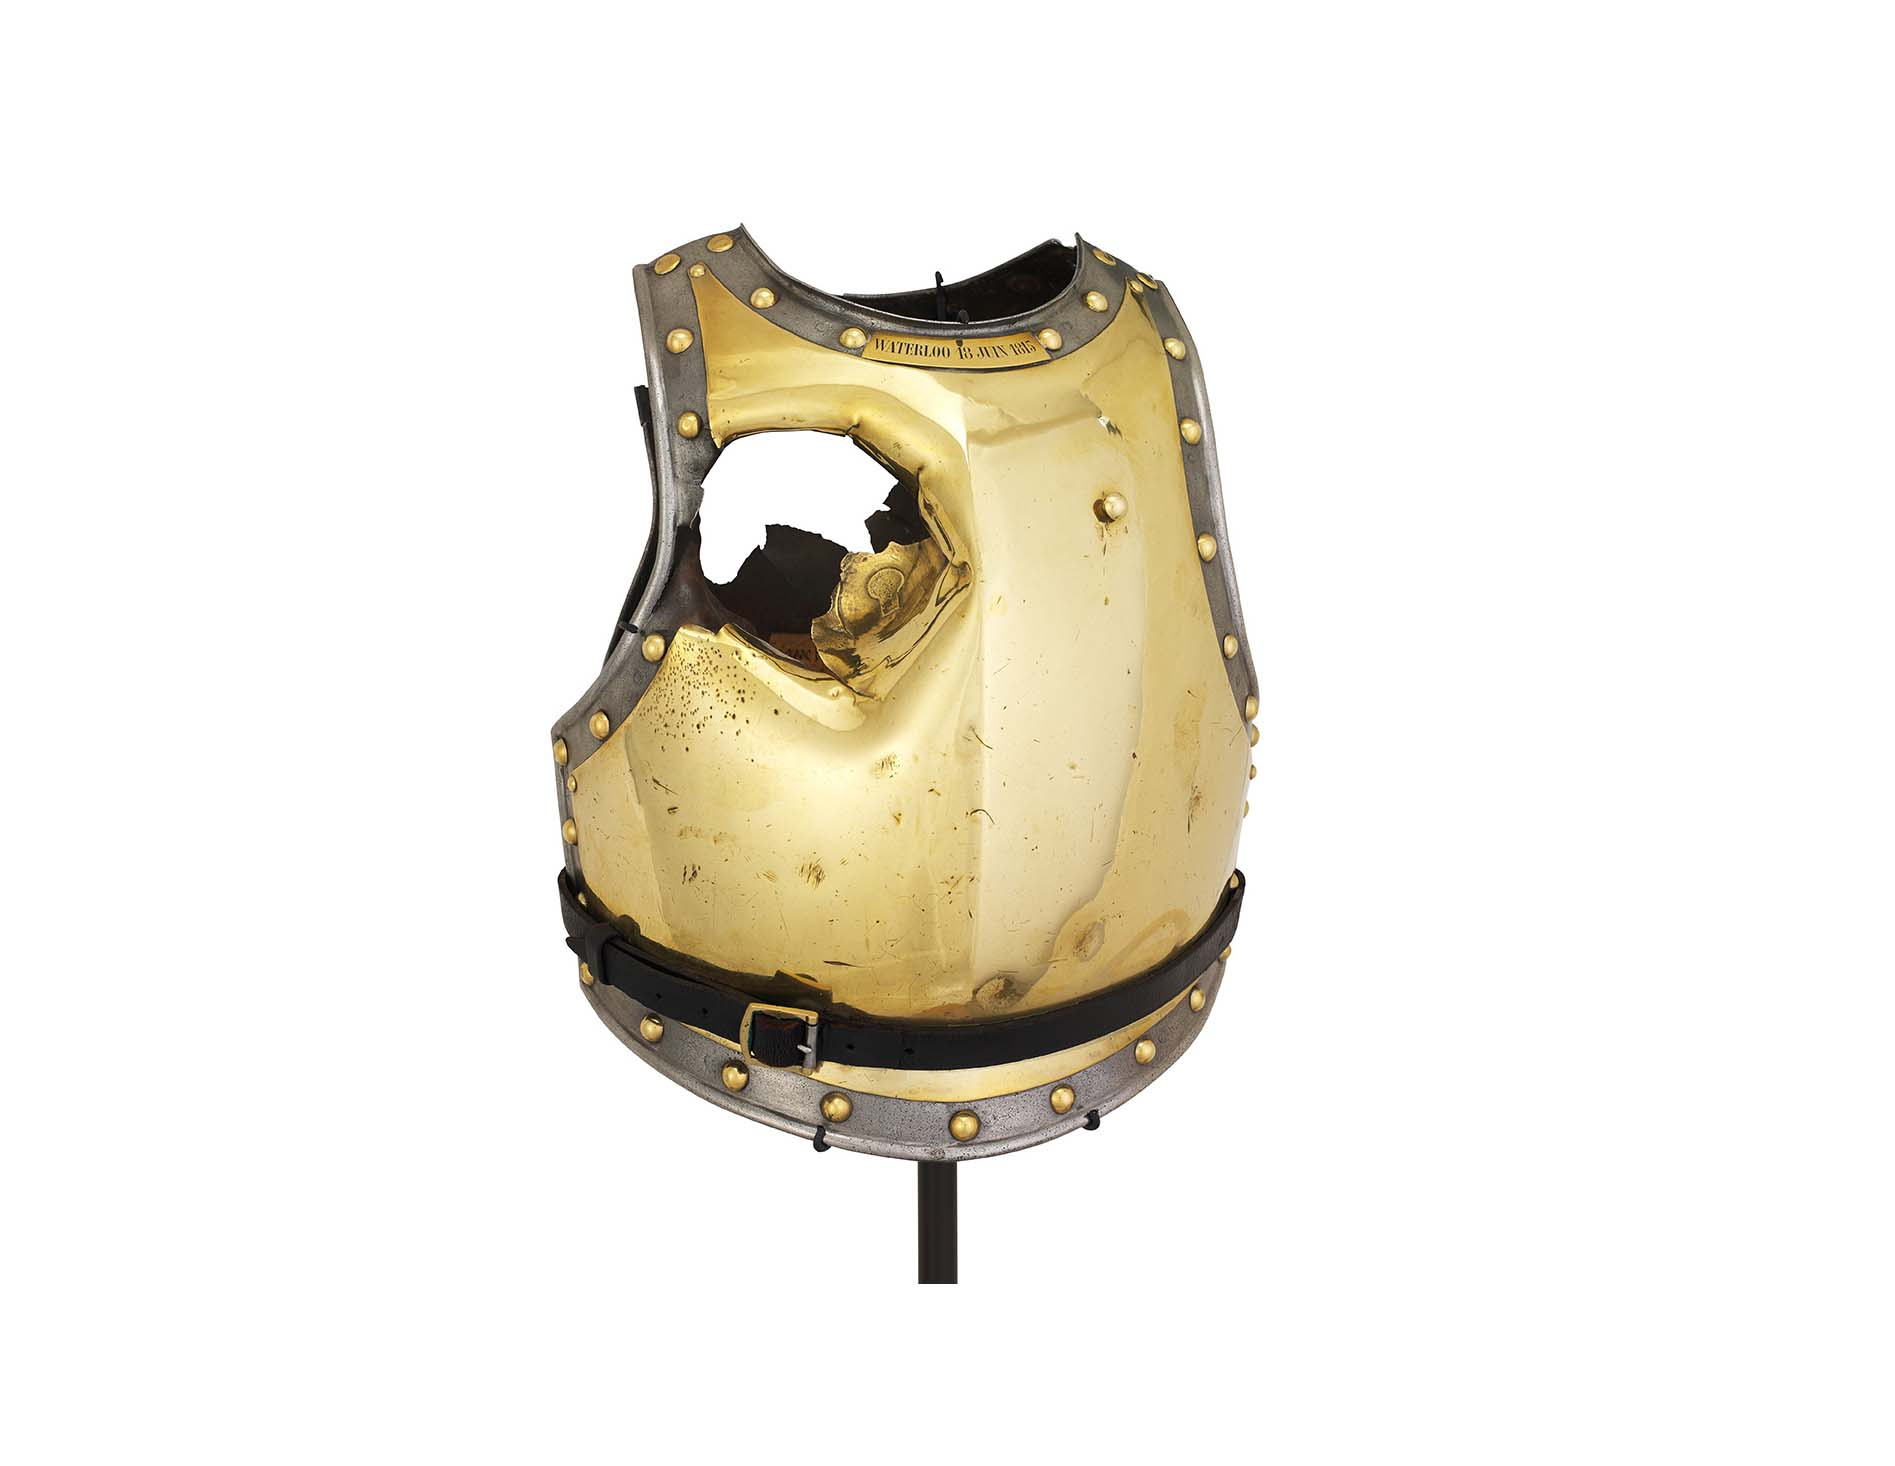 a photo of golden breastplate with a large hole punched through it